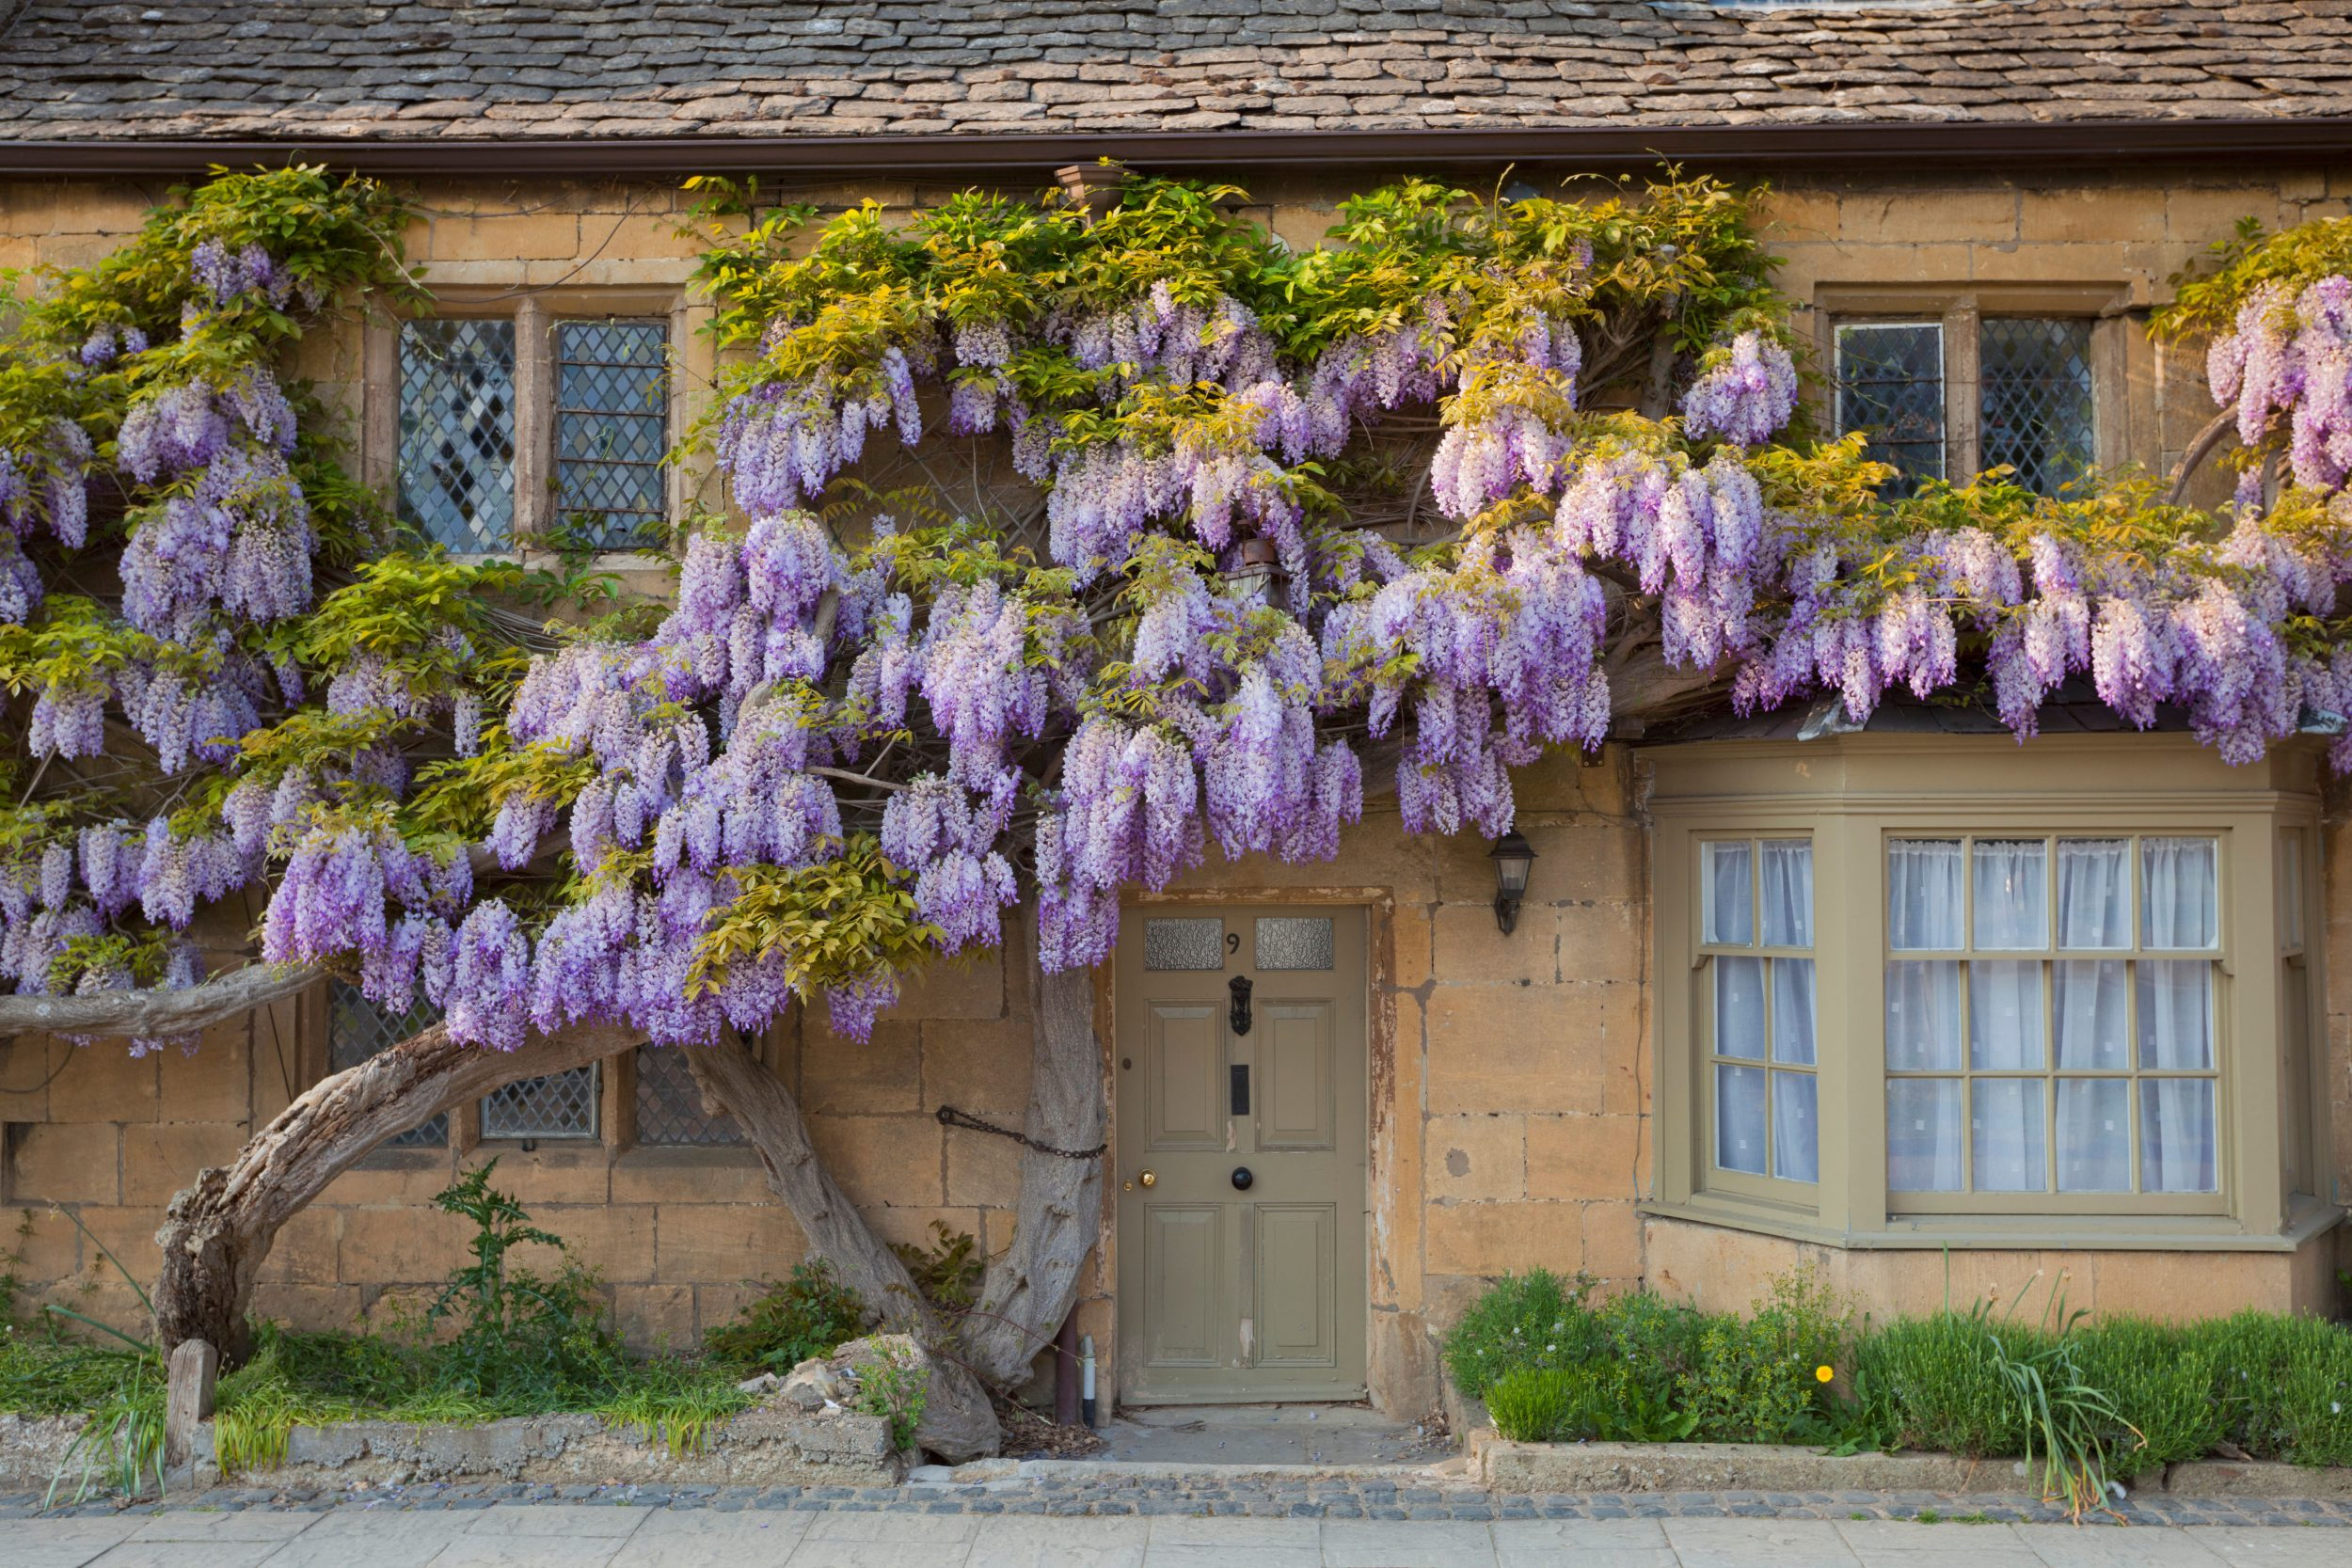 Alan Titchmarsh A Foolproof Guide To Growing Wisteria Country Life